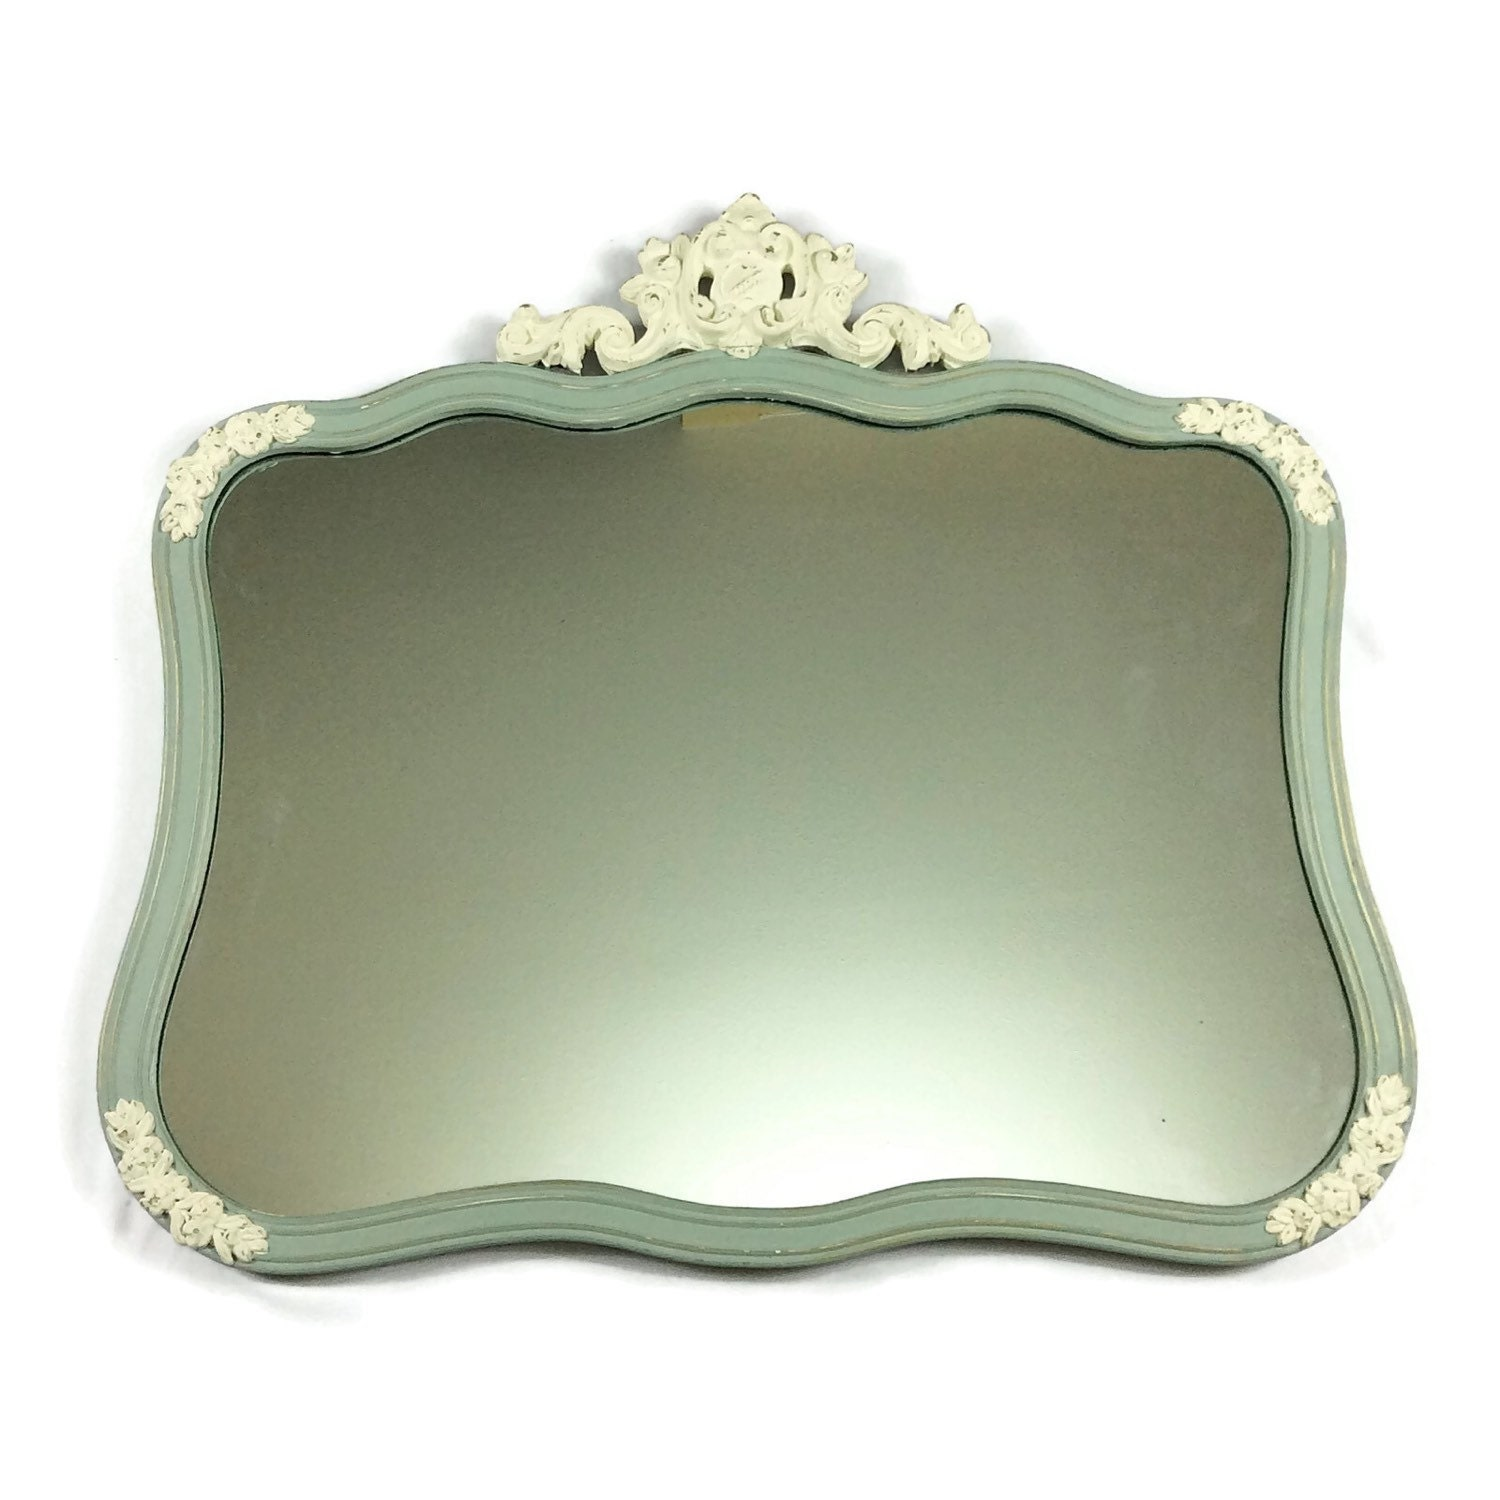 Mirror for sale large duck egg blue and white mirror for Large white mirrors for sale